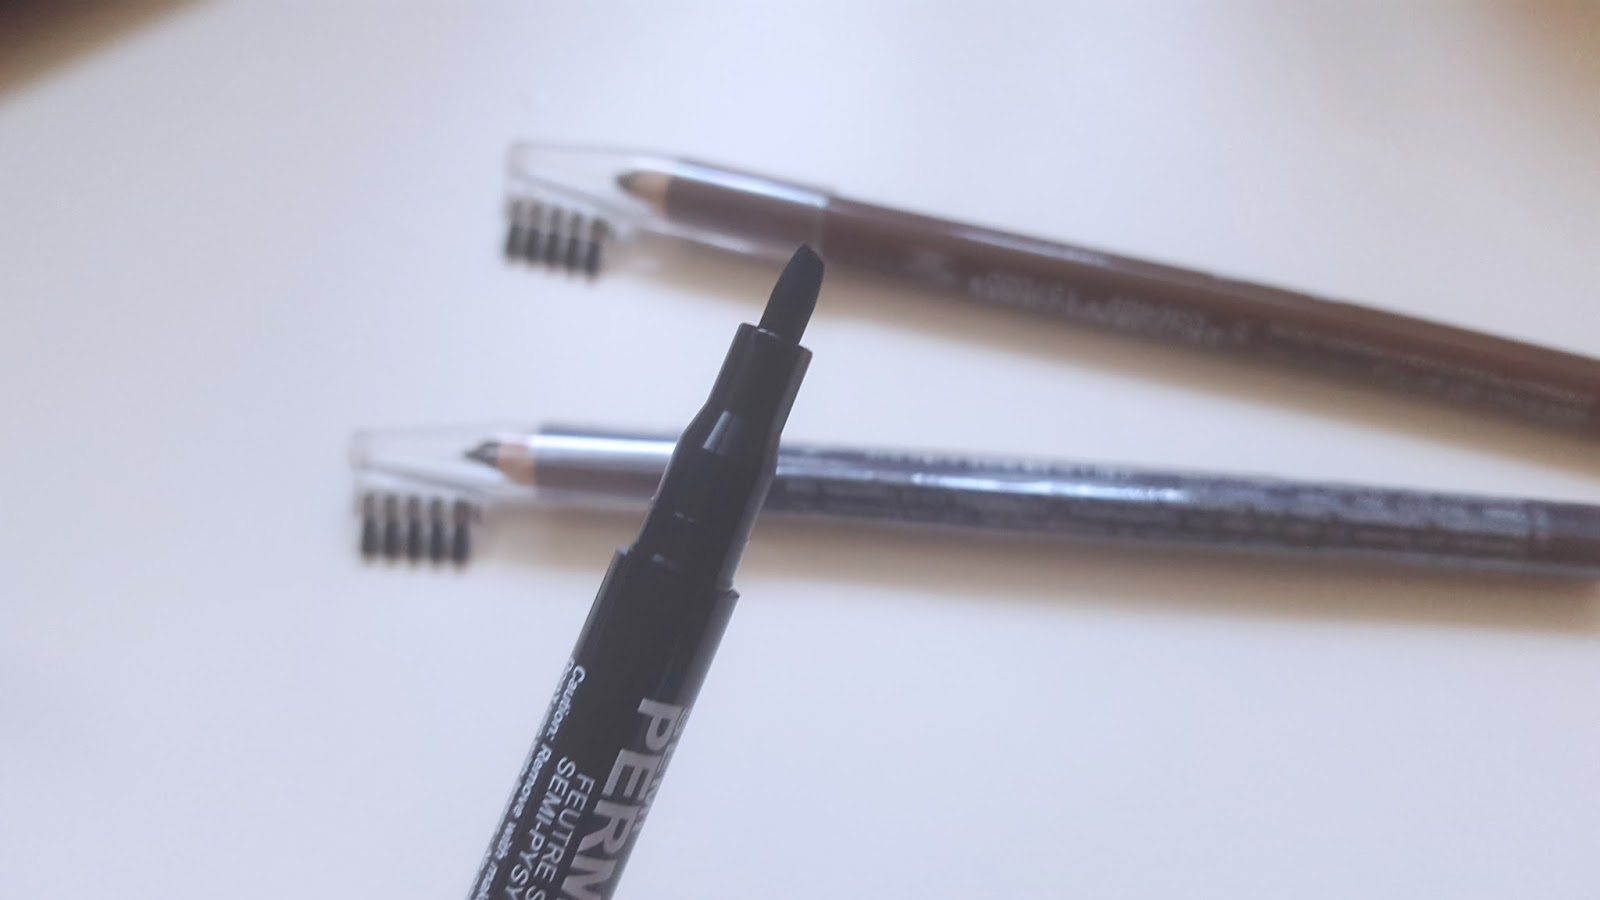 Stargazer Semi Permanent Eyebrow Pen in Brown